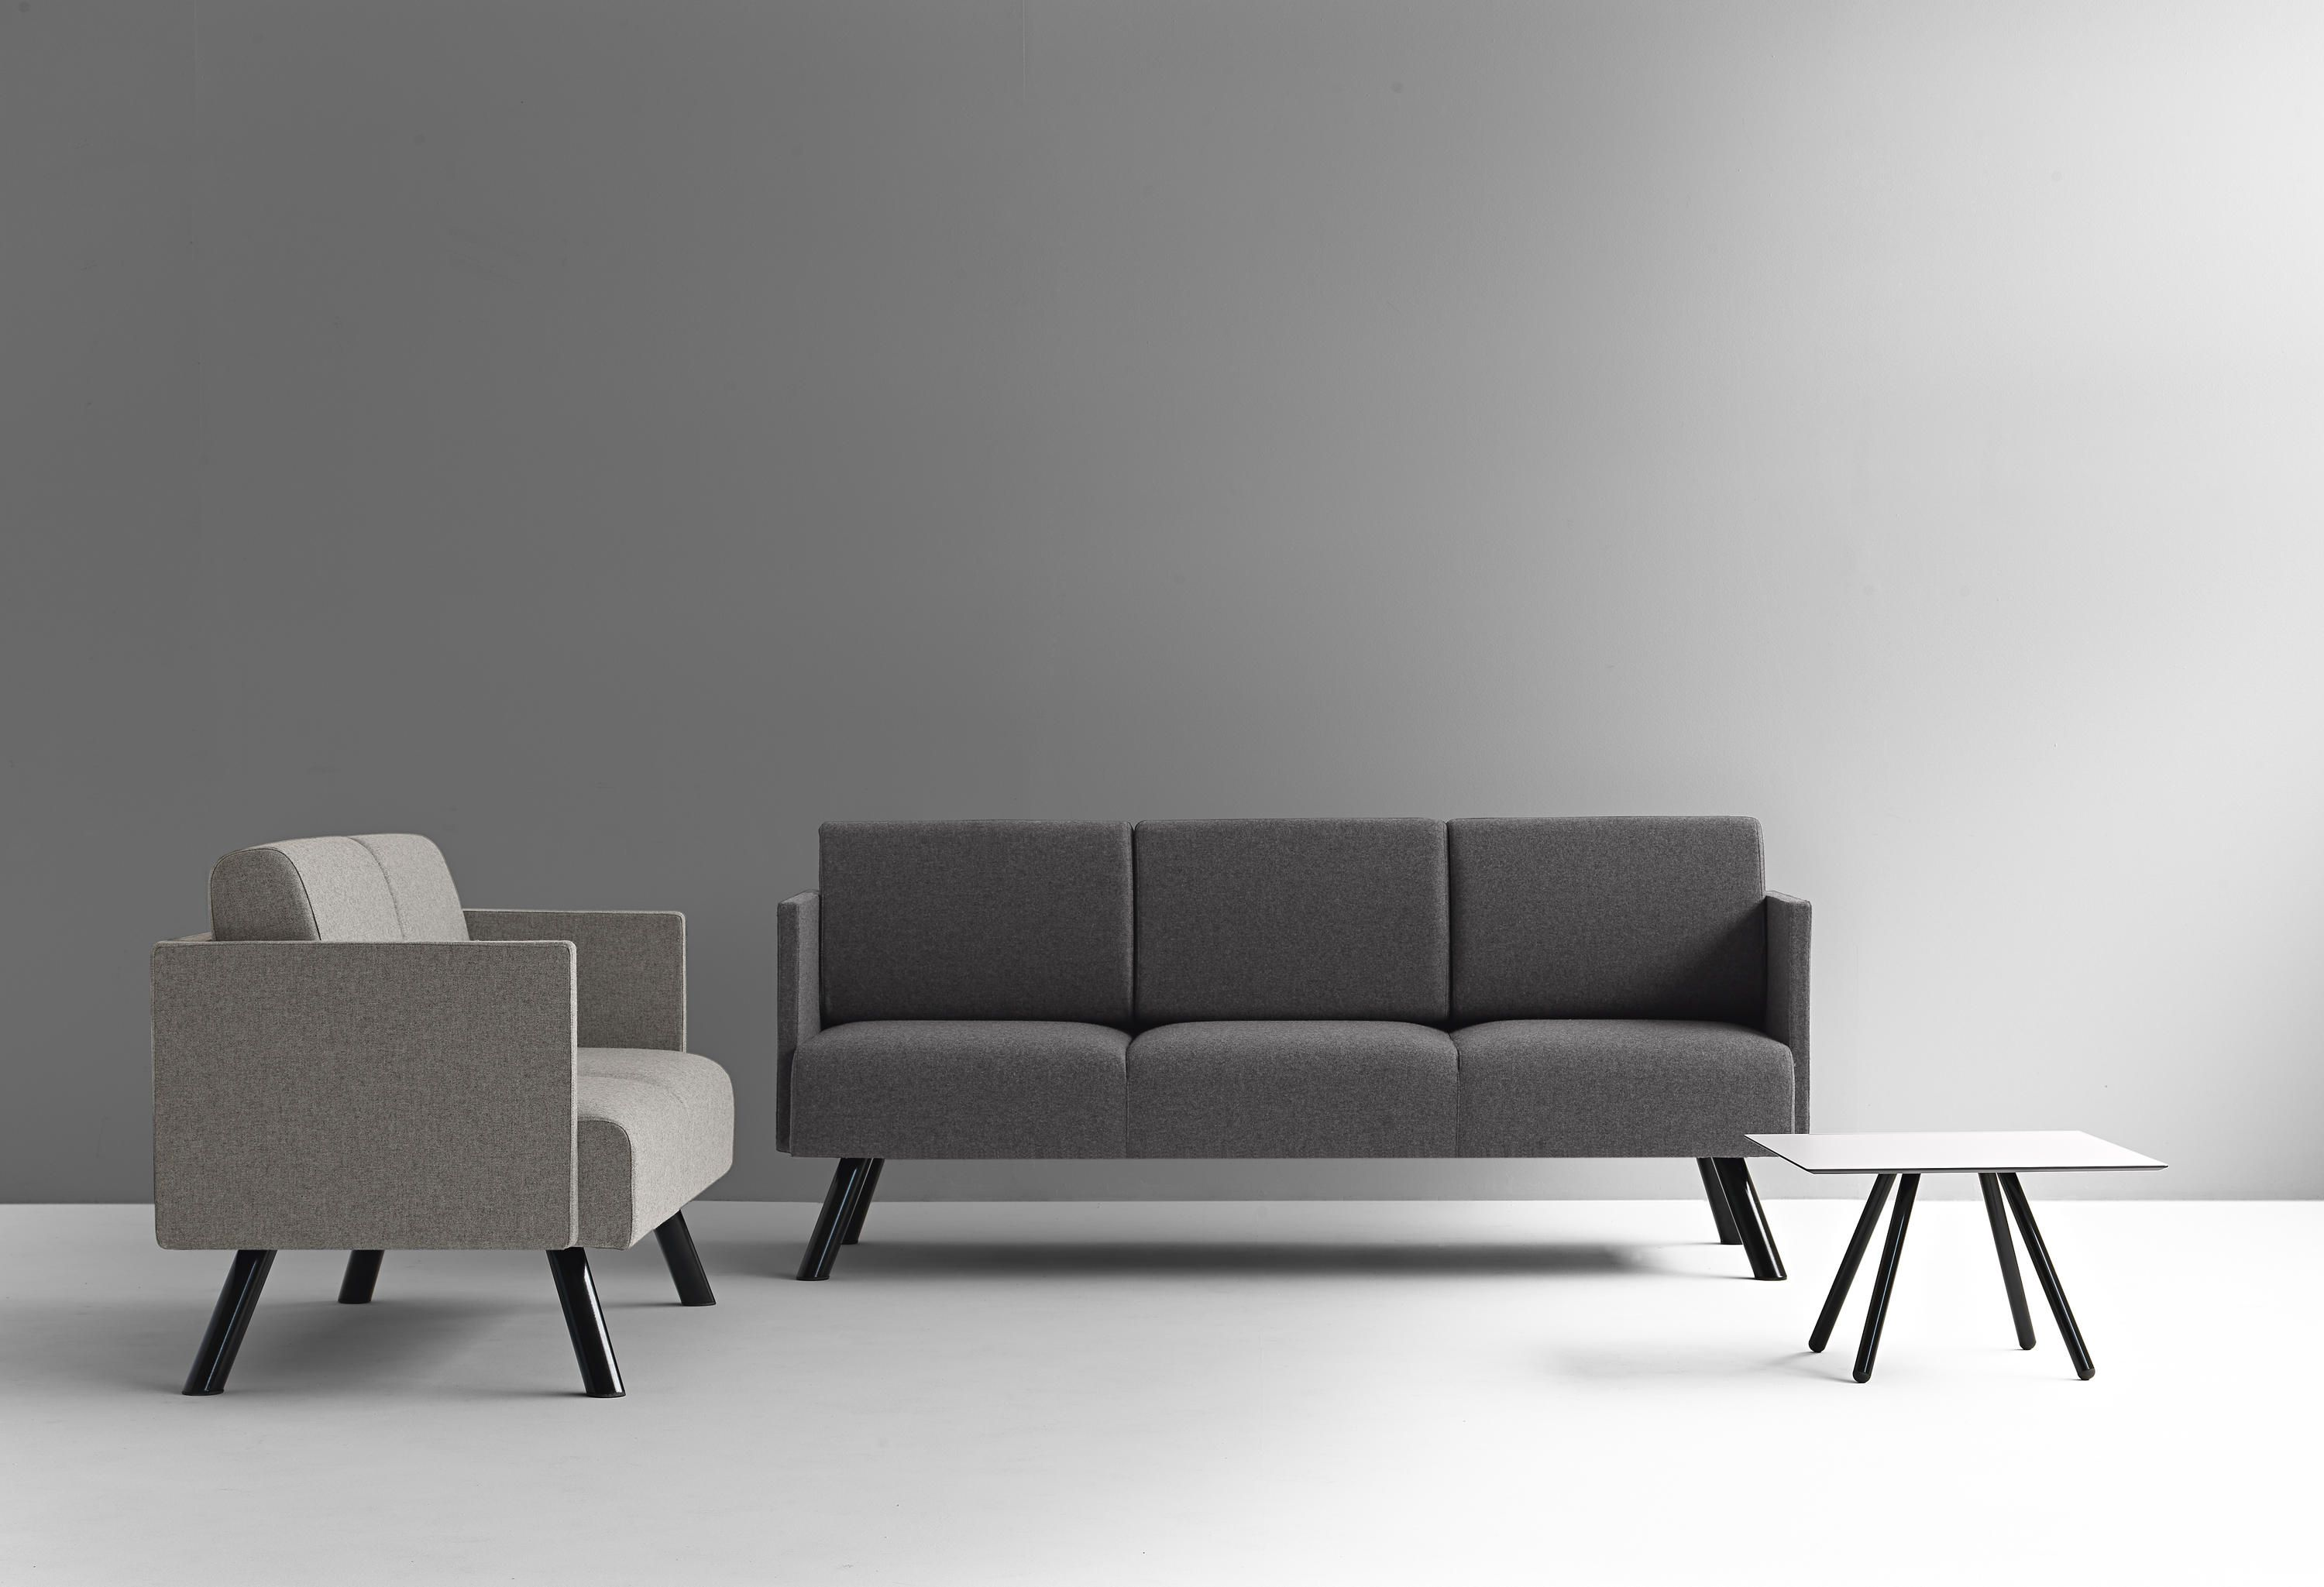 Nomad 825 Designer Lounge Sofas From Metalmobil All Information High Resolution Images Cads Catalogues Contact In Furniture Sofa Design Lounge Sofa